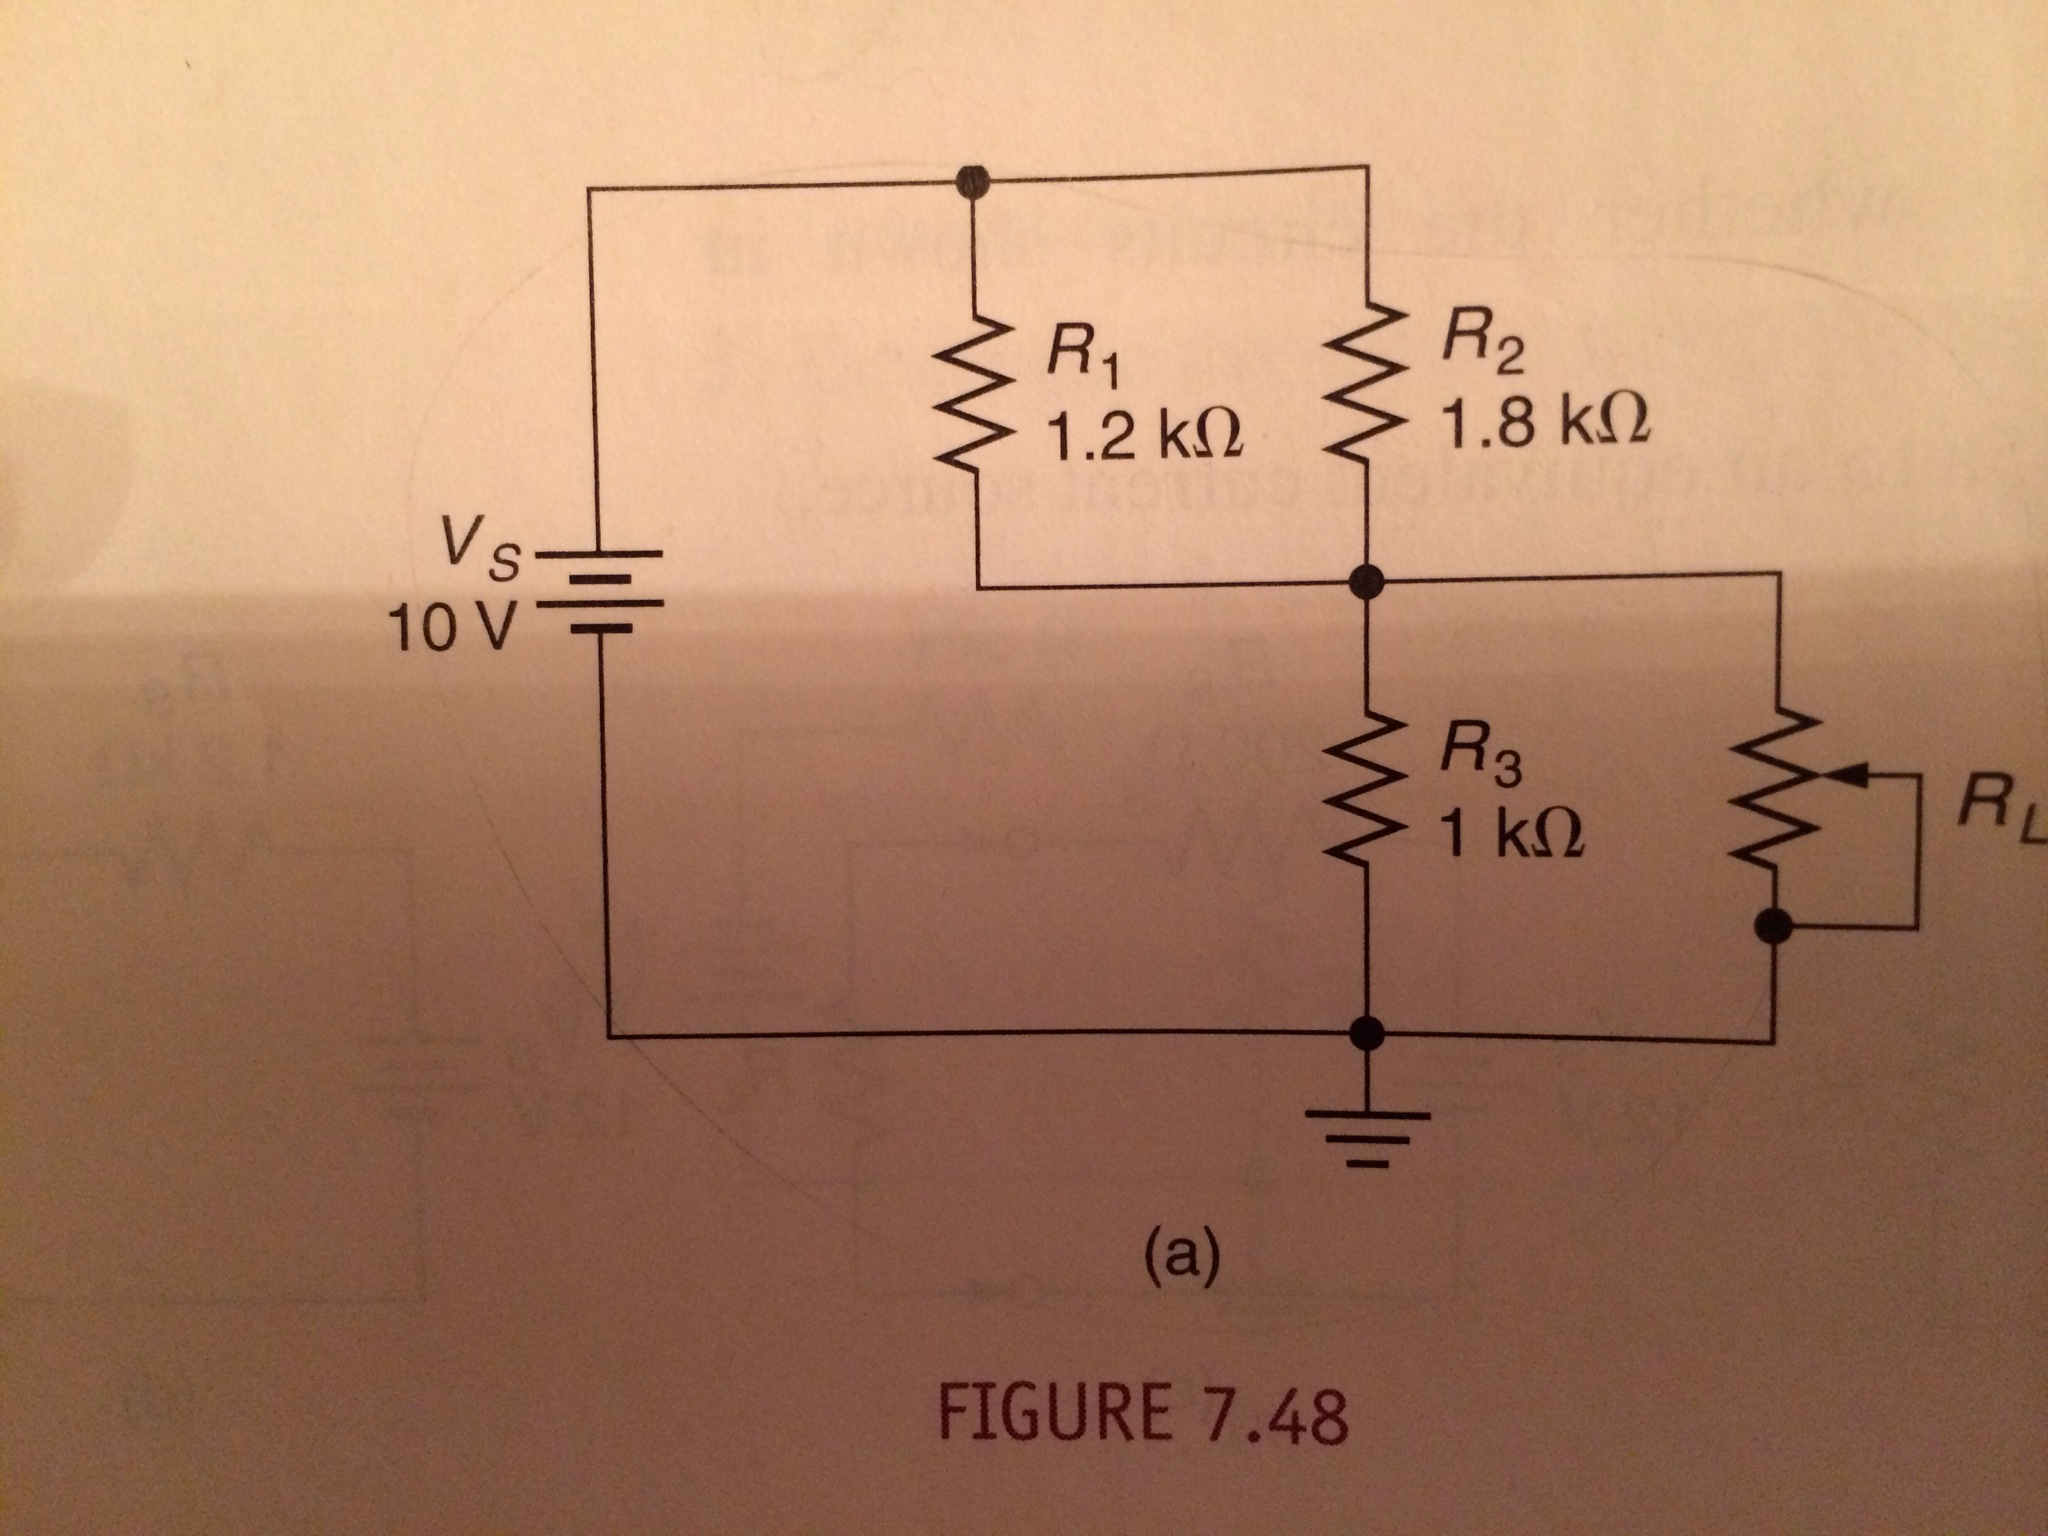 Derive the Norton equivalent for the circuit shown